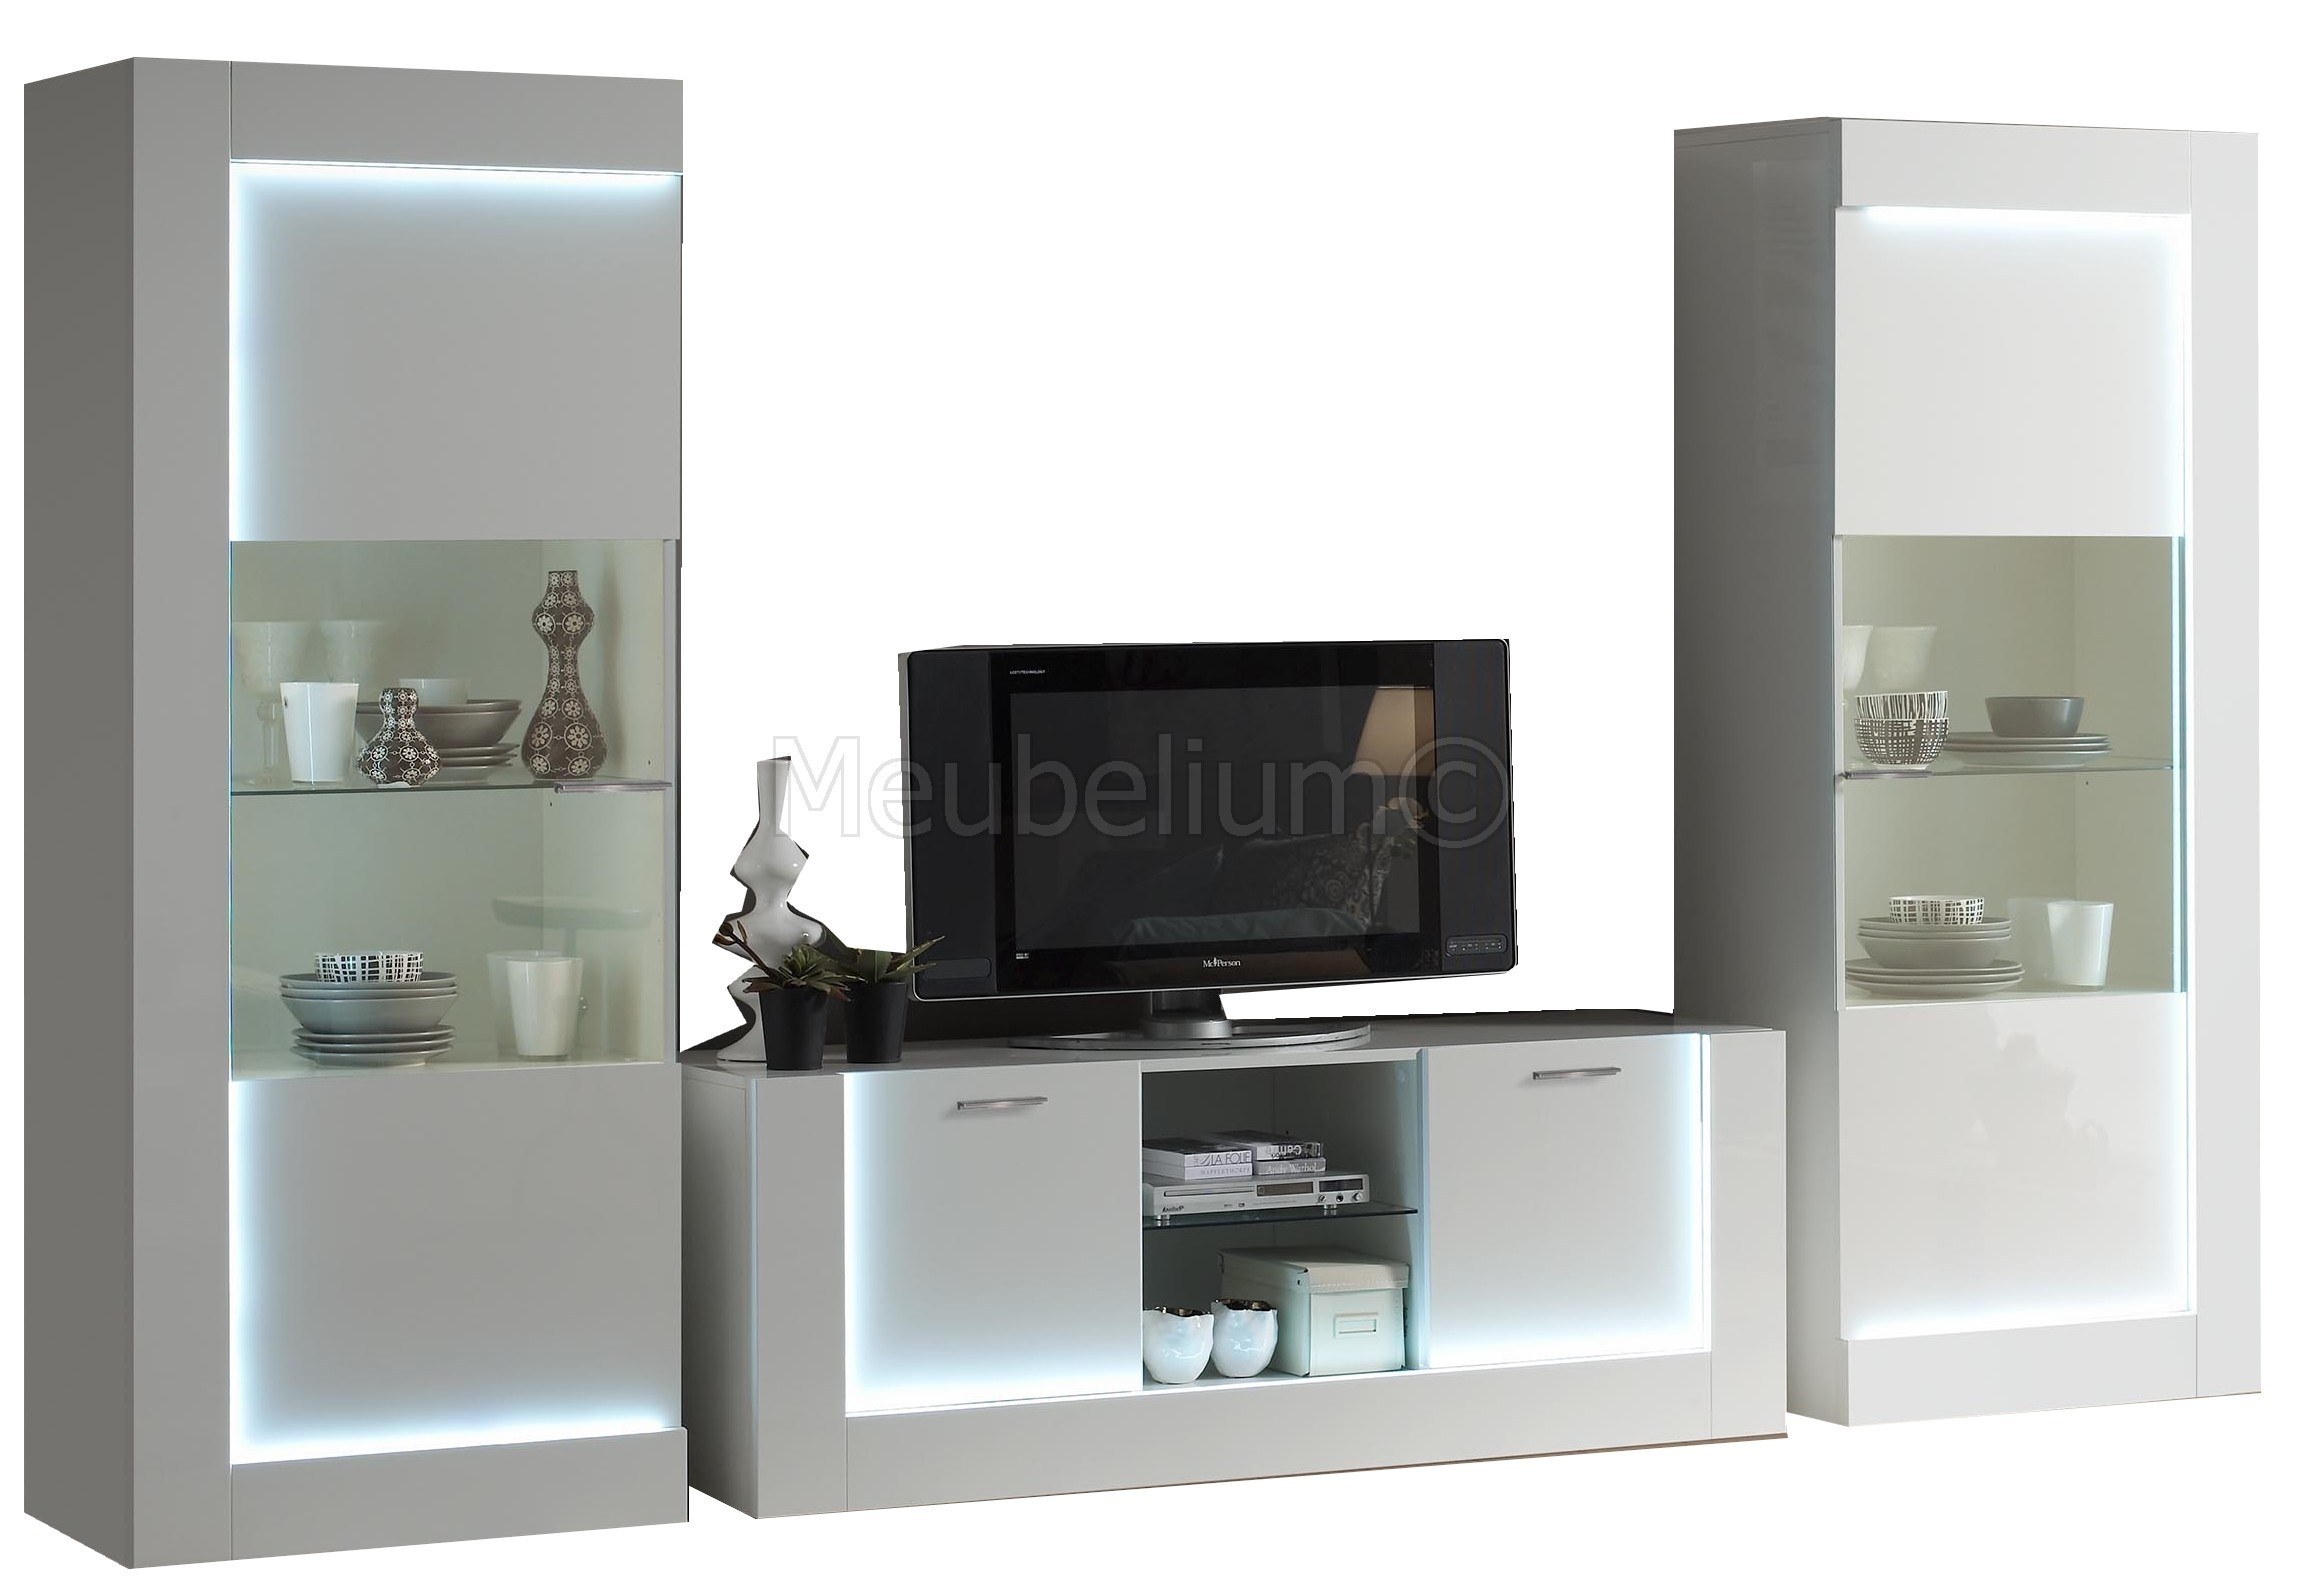 Ensemble Meuble Tv Mural Design Laquee Blanche Aved Led 100 Italienne Galena Pas Cher